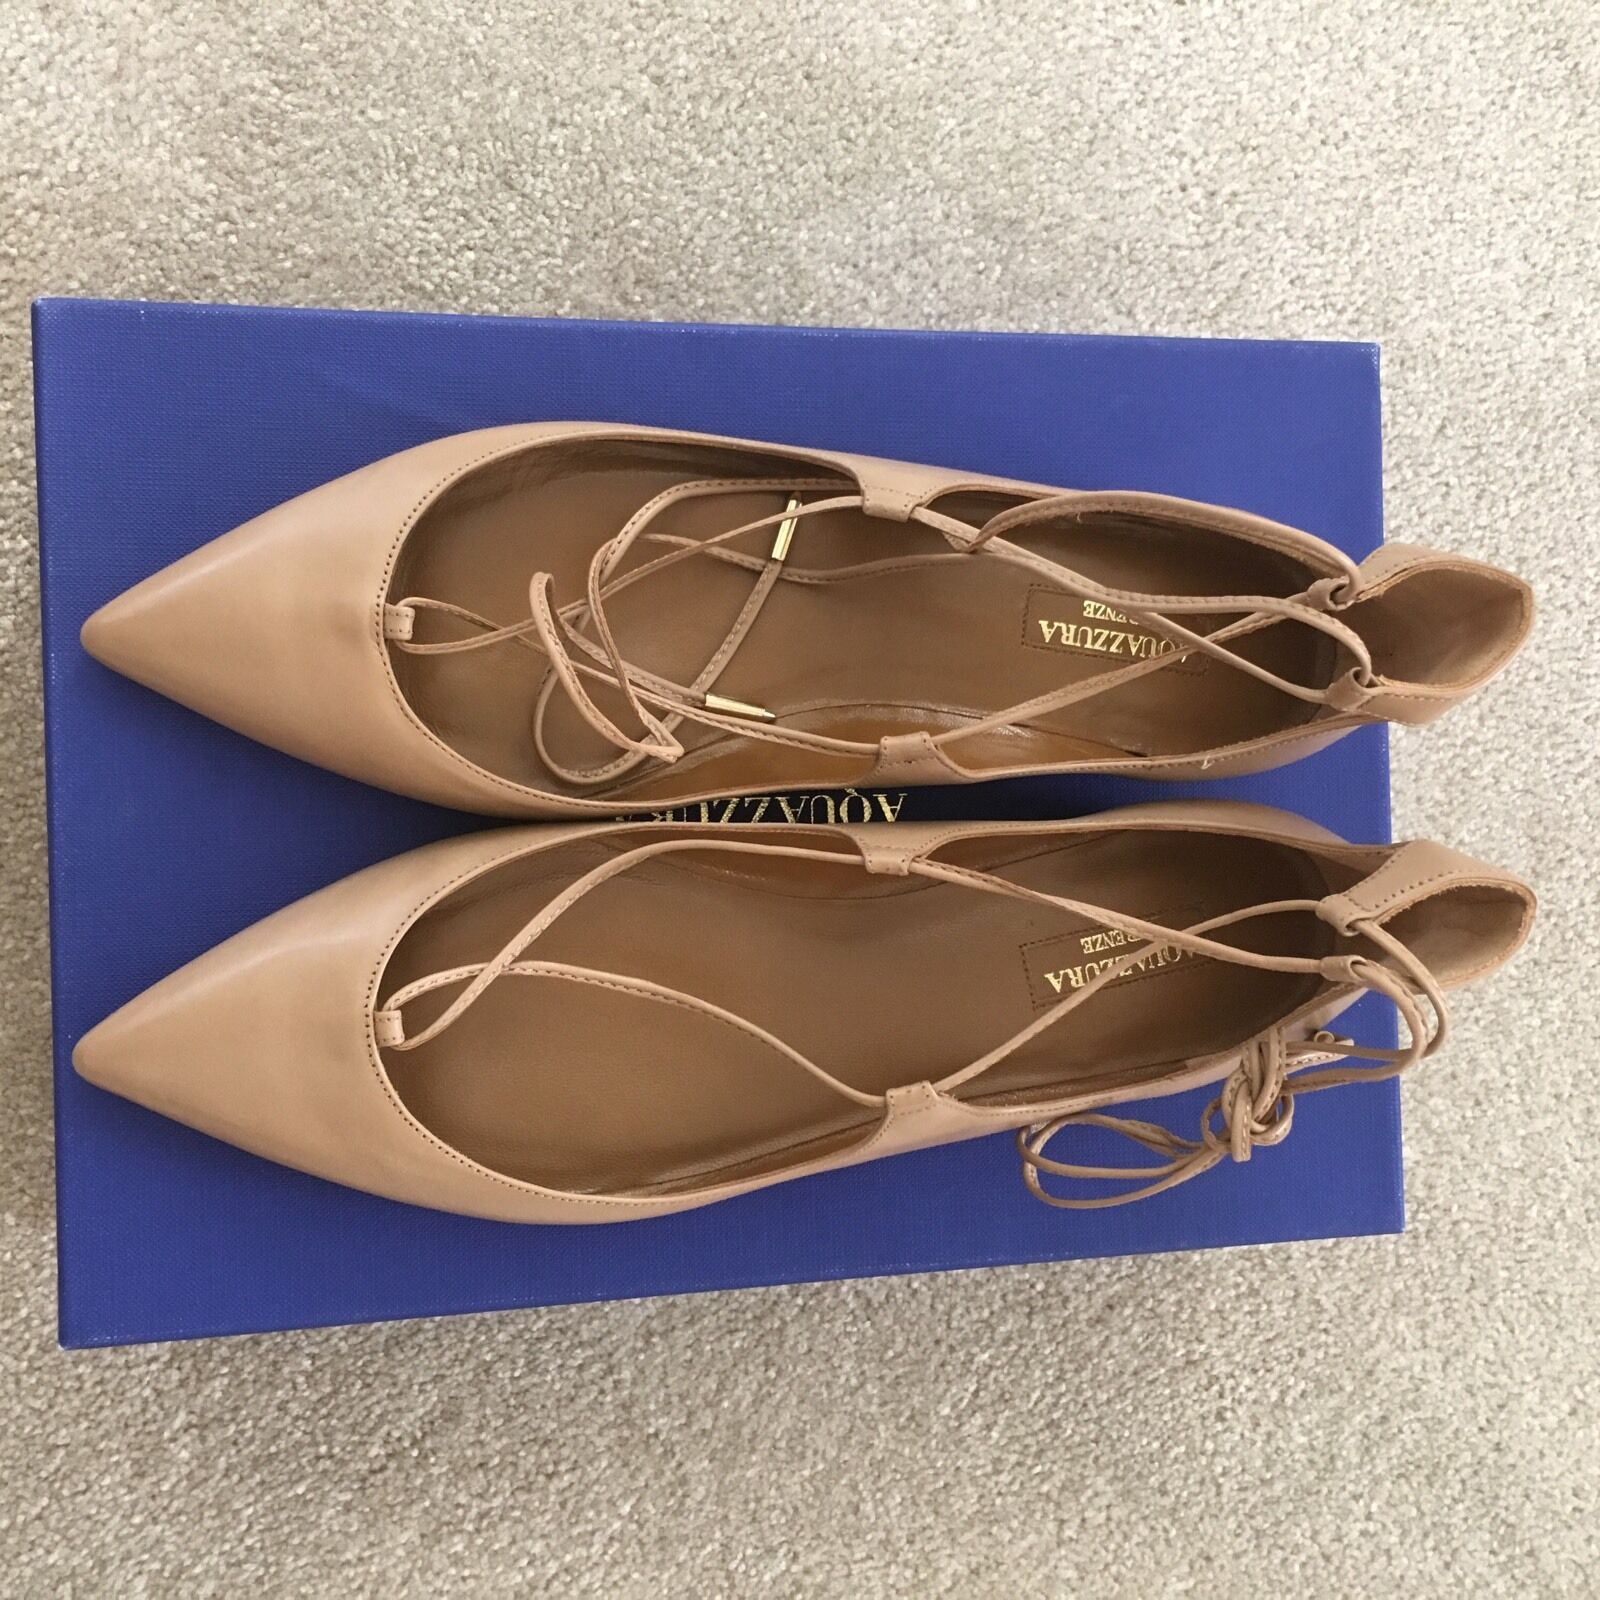 Aquazzura Christy läder Lace Up slips Ballet Point Toe Toe Toe Flats Biscotto Beige 38.5  lågt pris